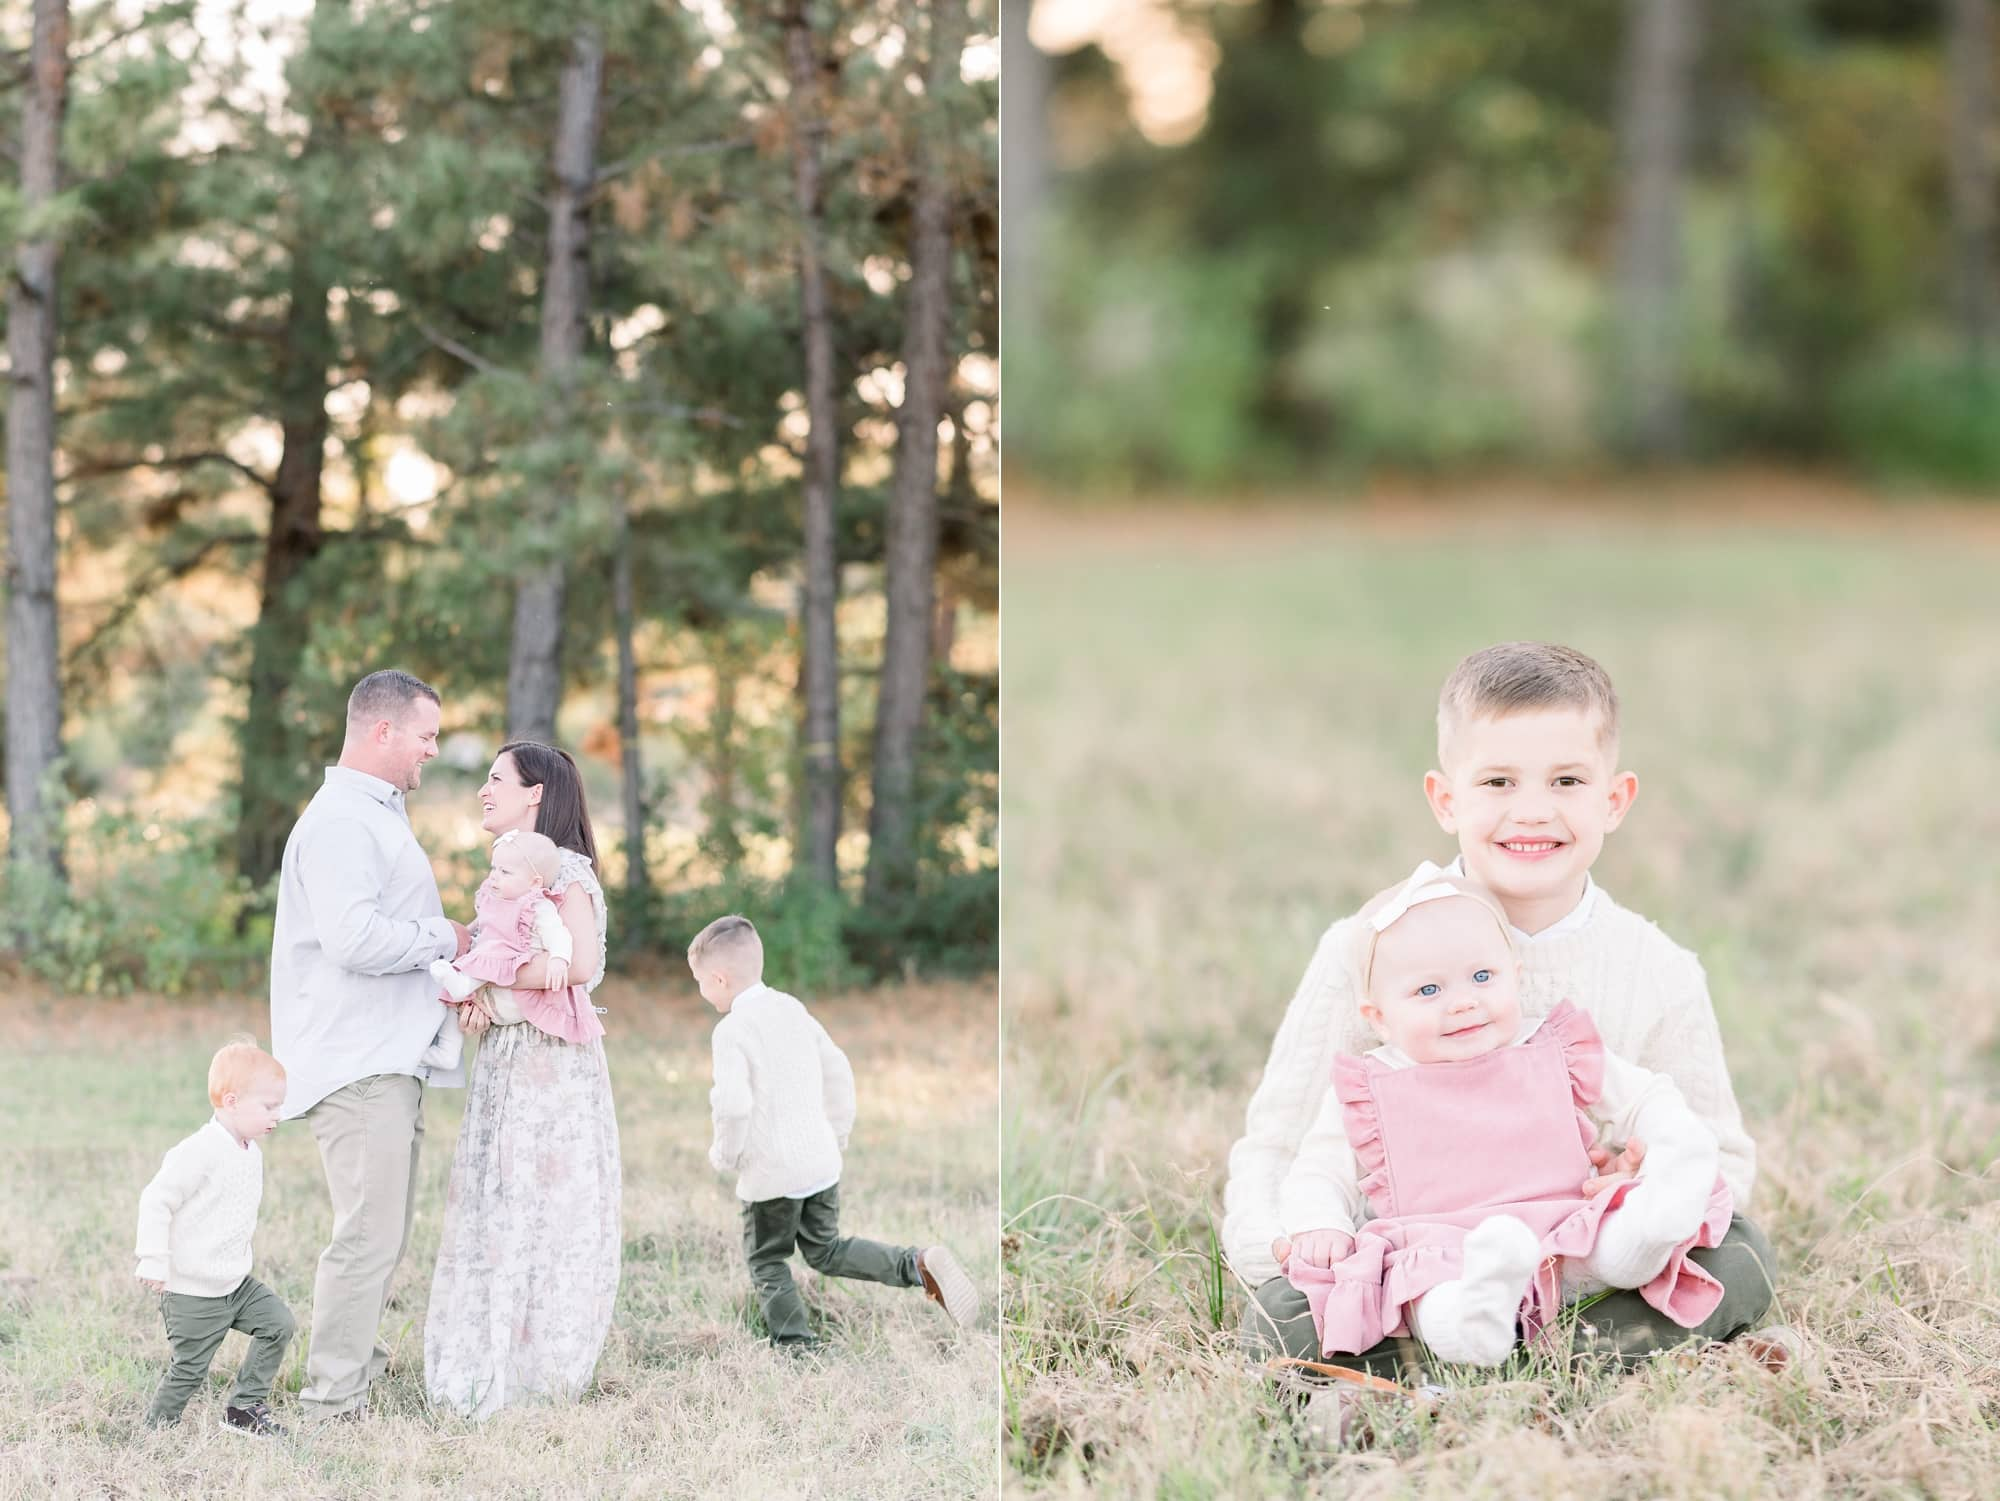 Kids running around Mom and Dad while they look at each other during family portrait session. Photos by Aimee Hamilton Photography.